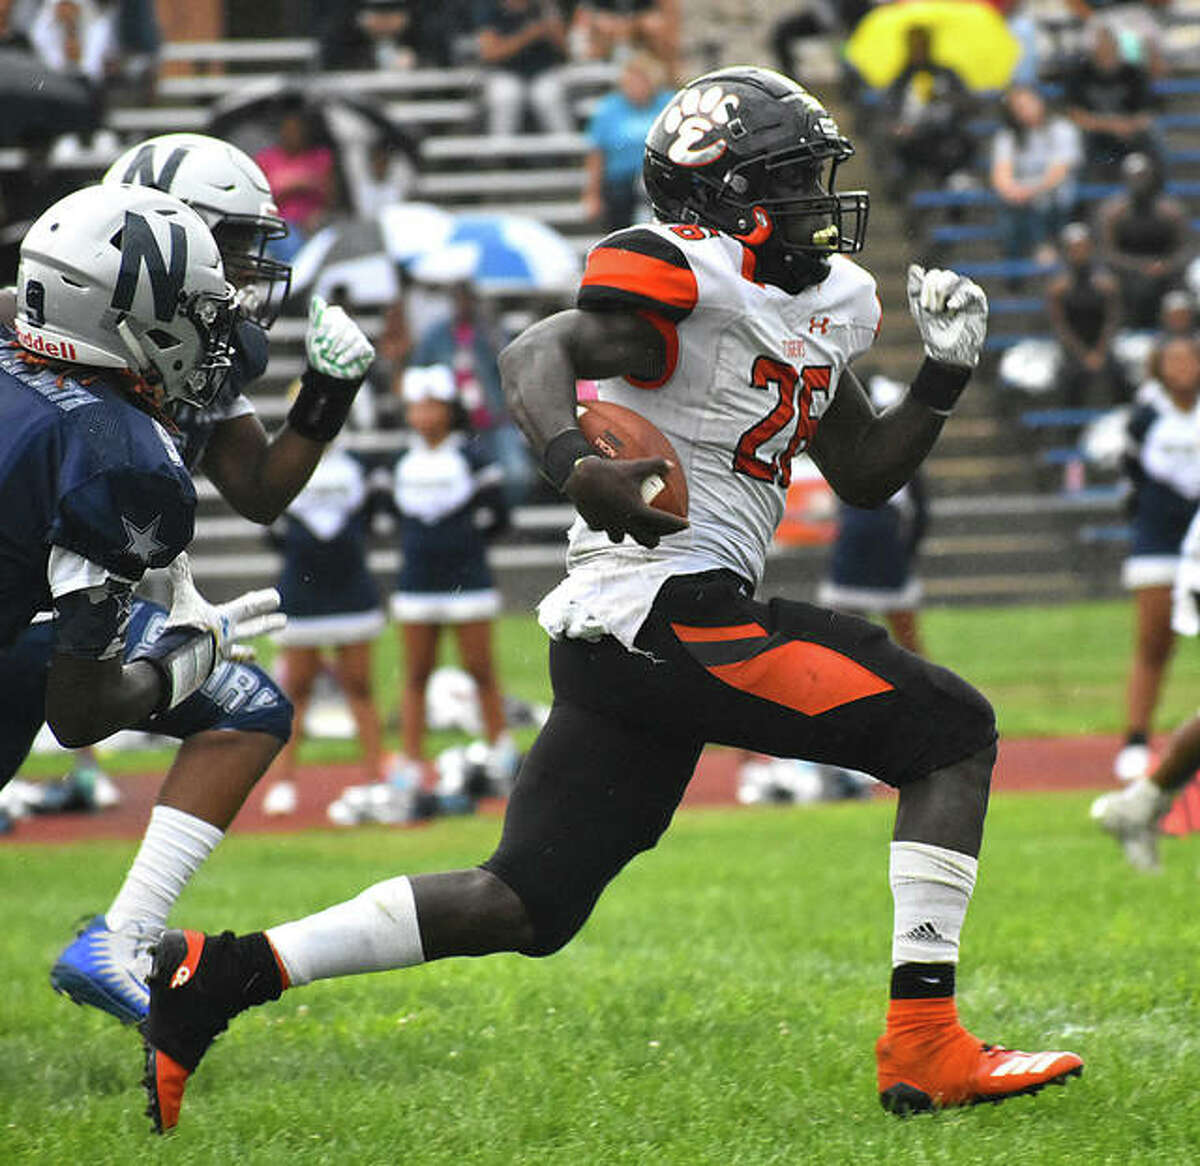 Edwardsville running back Justin Johnson Jr. speeds past the defense on his way to a 30-yard rushing touchdown against McCluer North in the 2019 season opener.